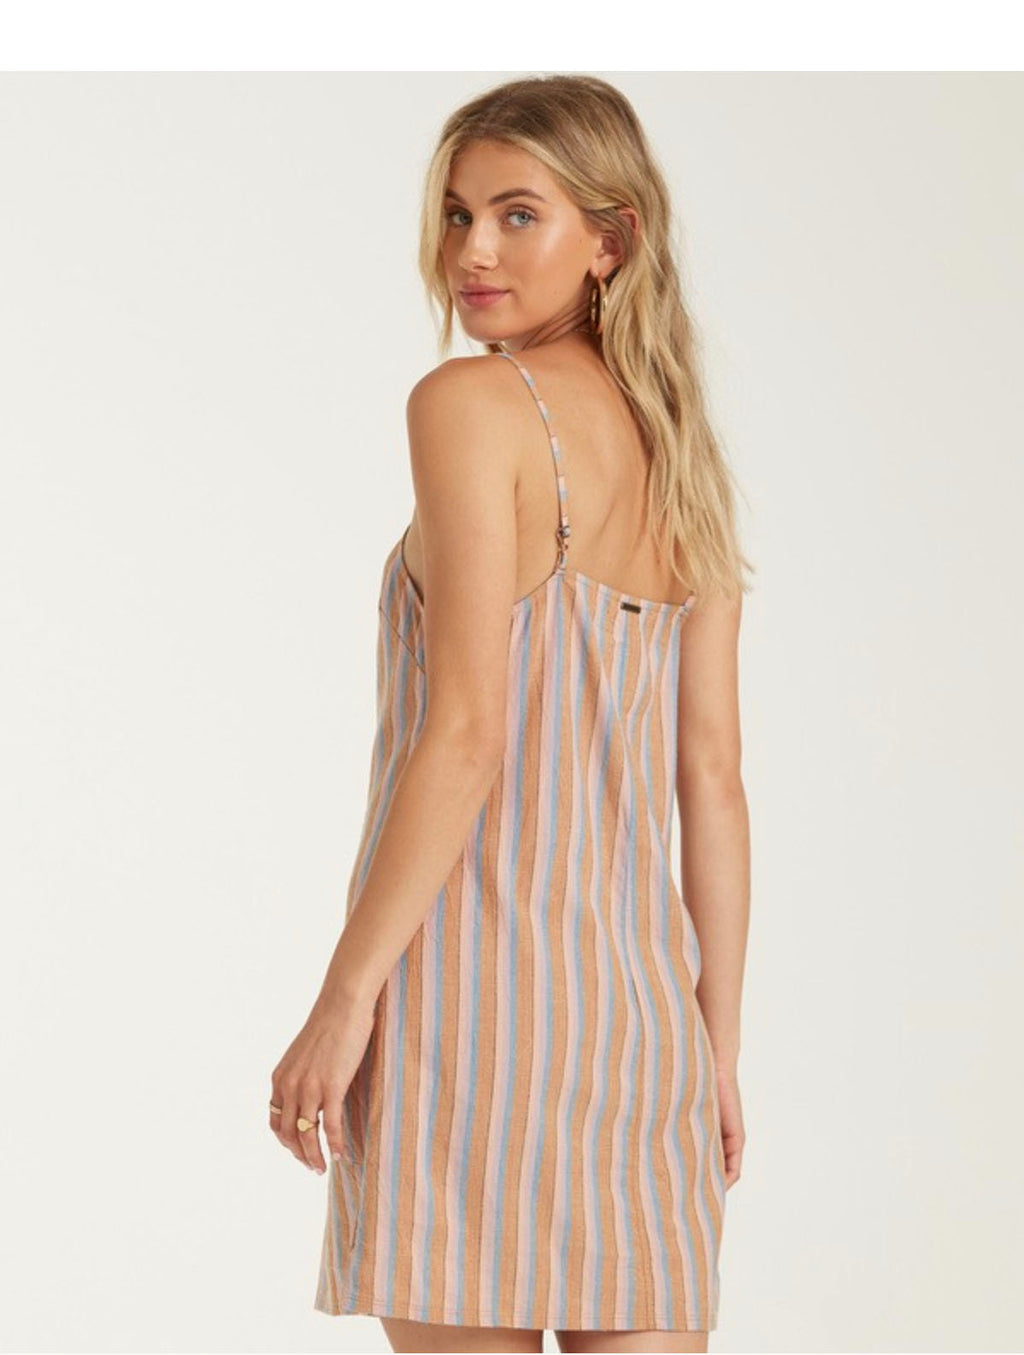 Billabong Straight Round Dress in Multi